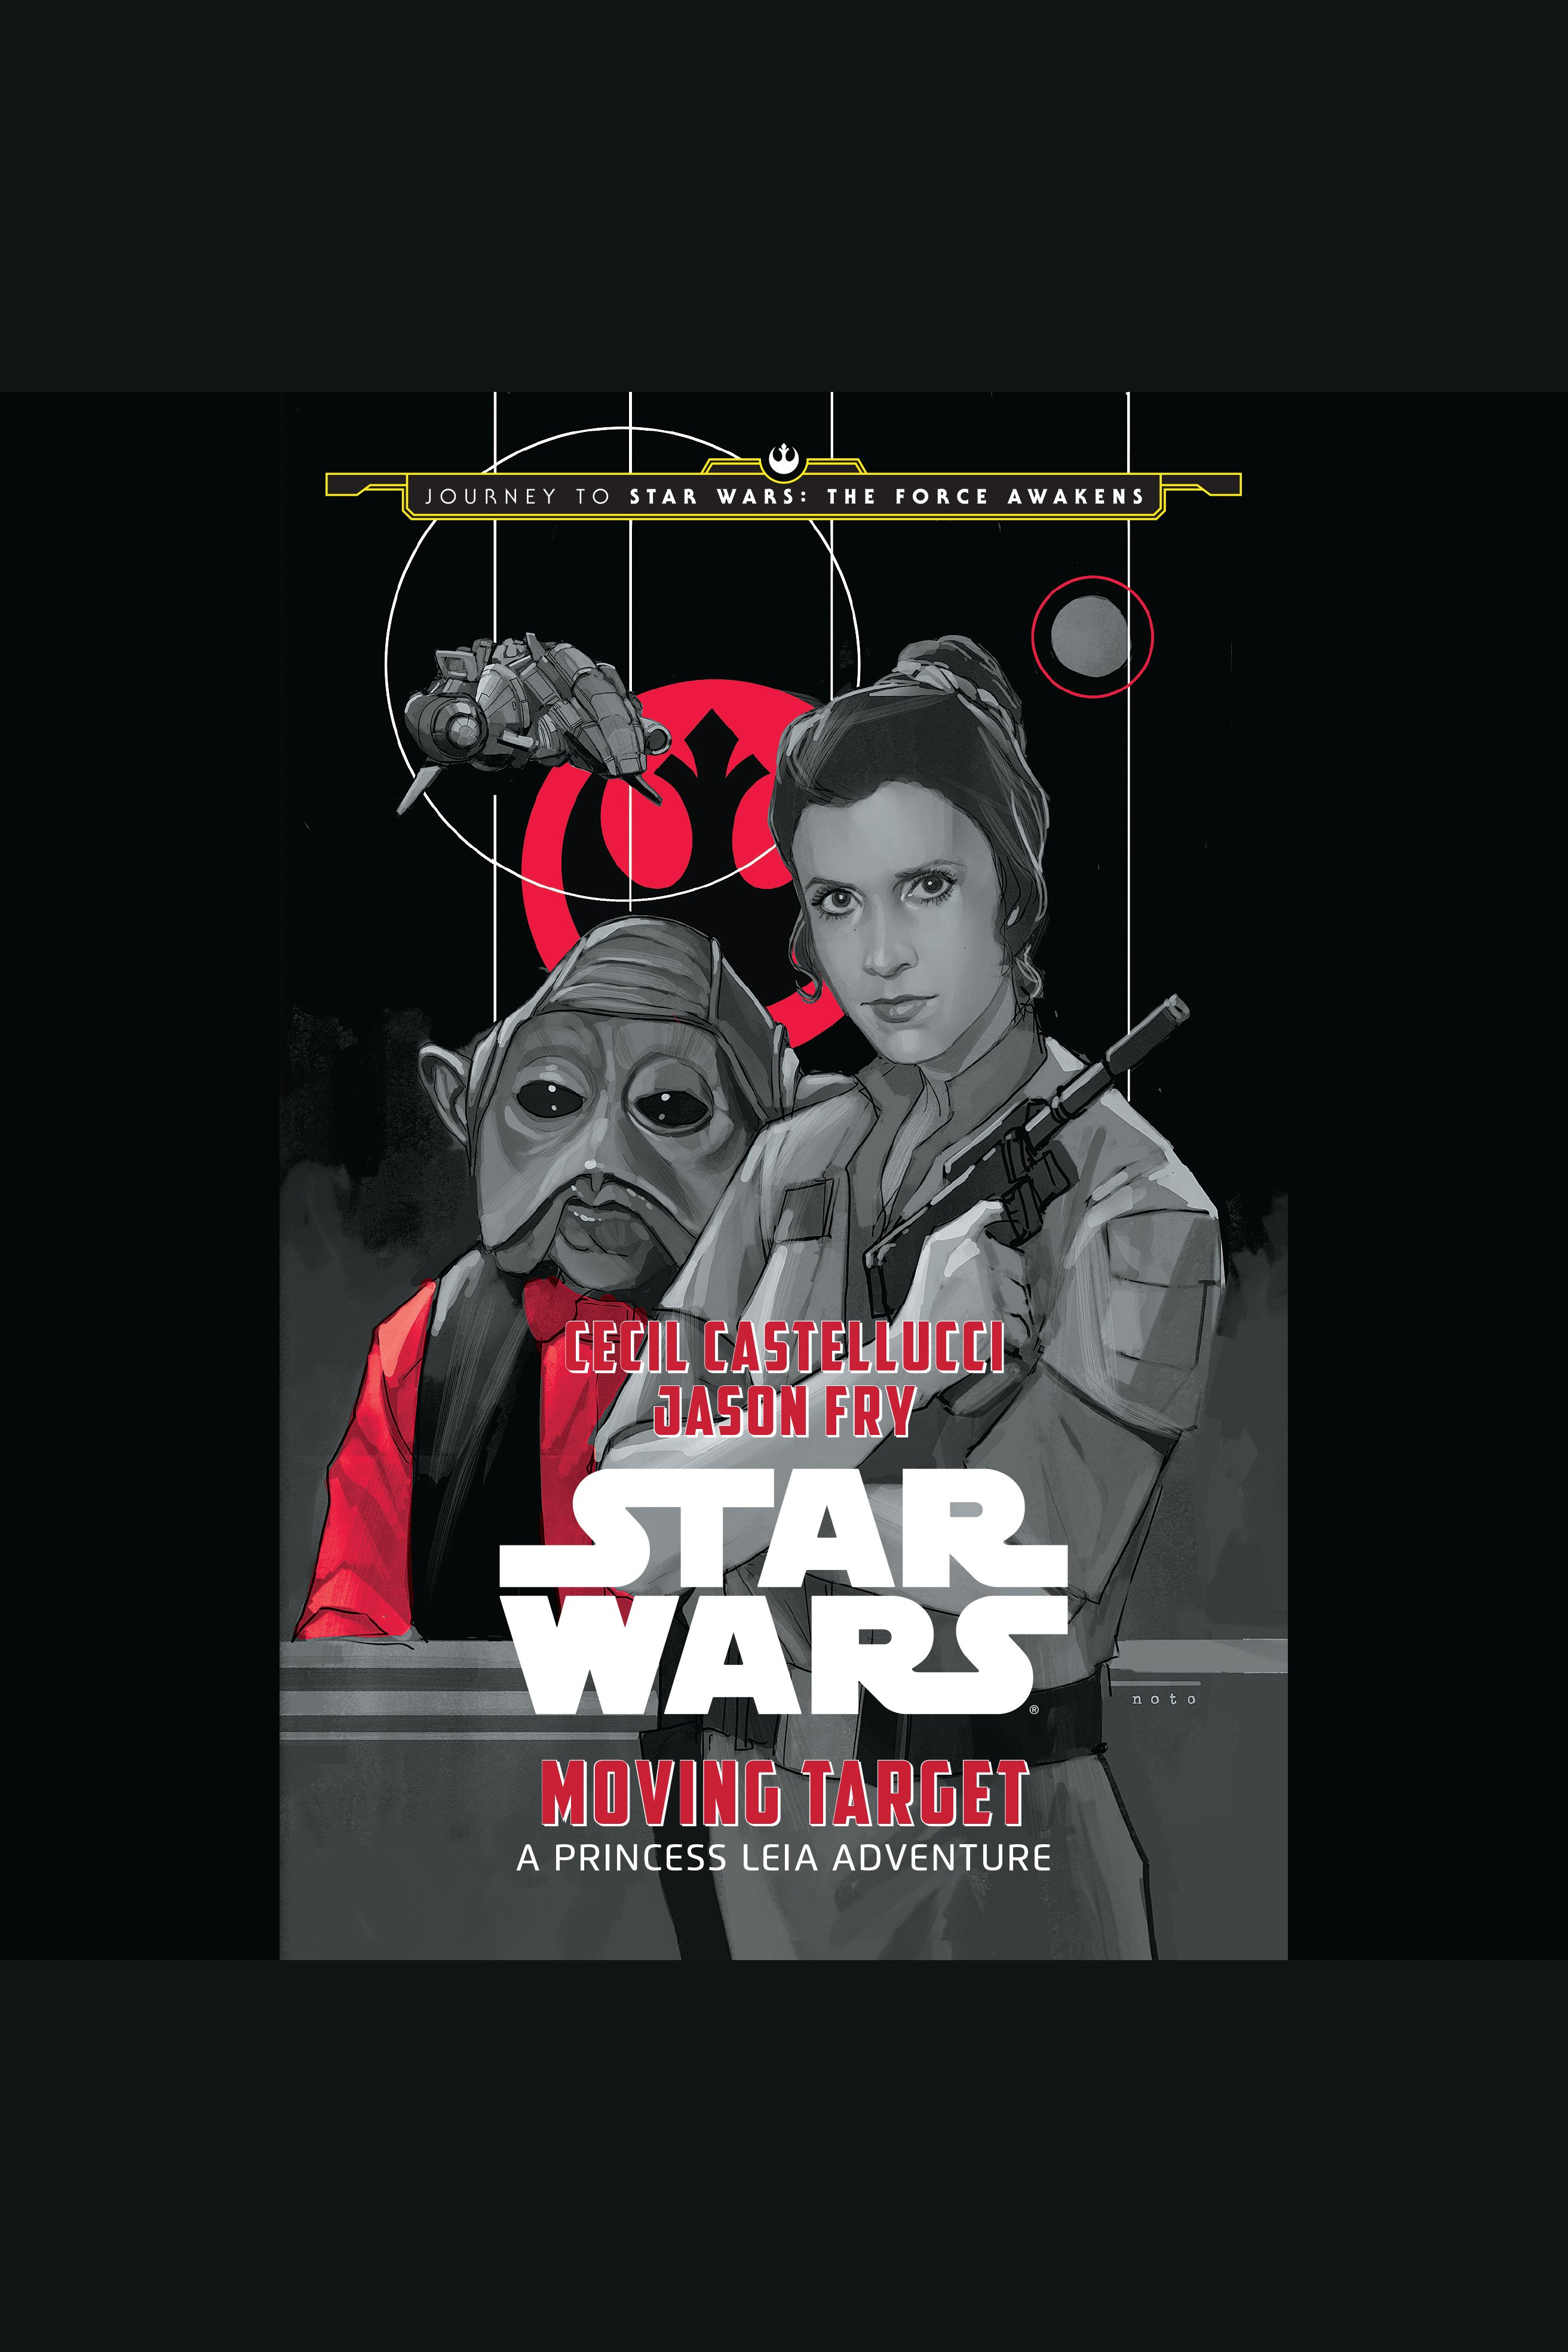 Star Wars moving target a Princess Leia adventure cover image